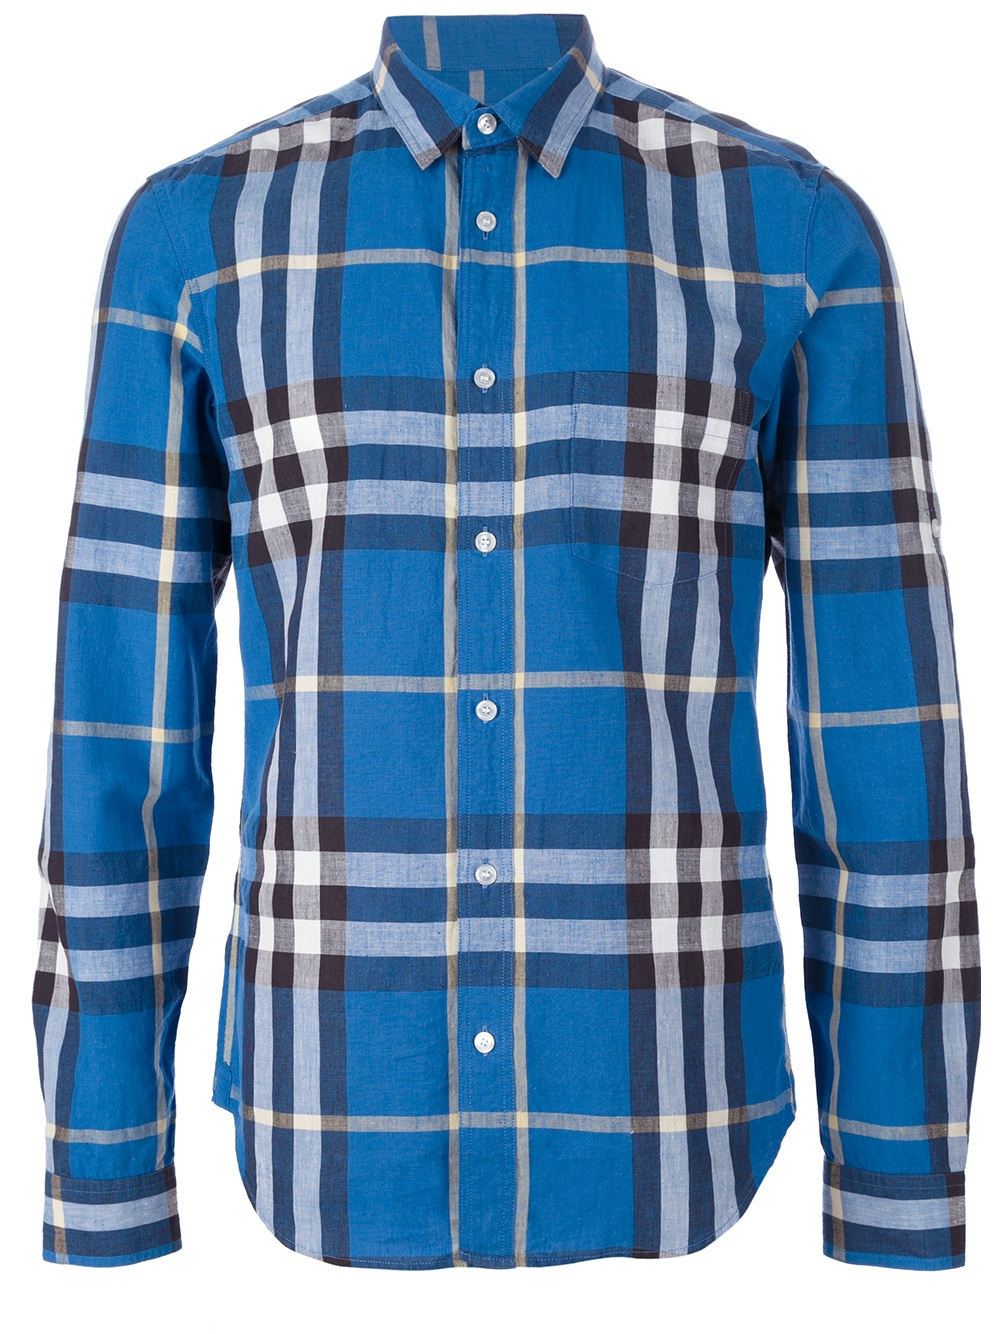 Lyst burberry brit checked short sleeve shirt in blue for Burberry brit checked shirt